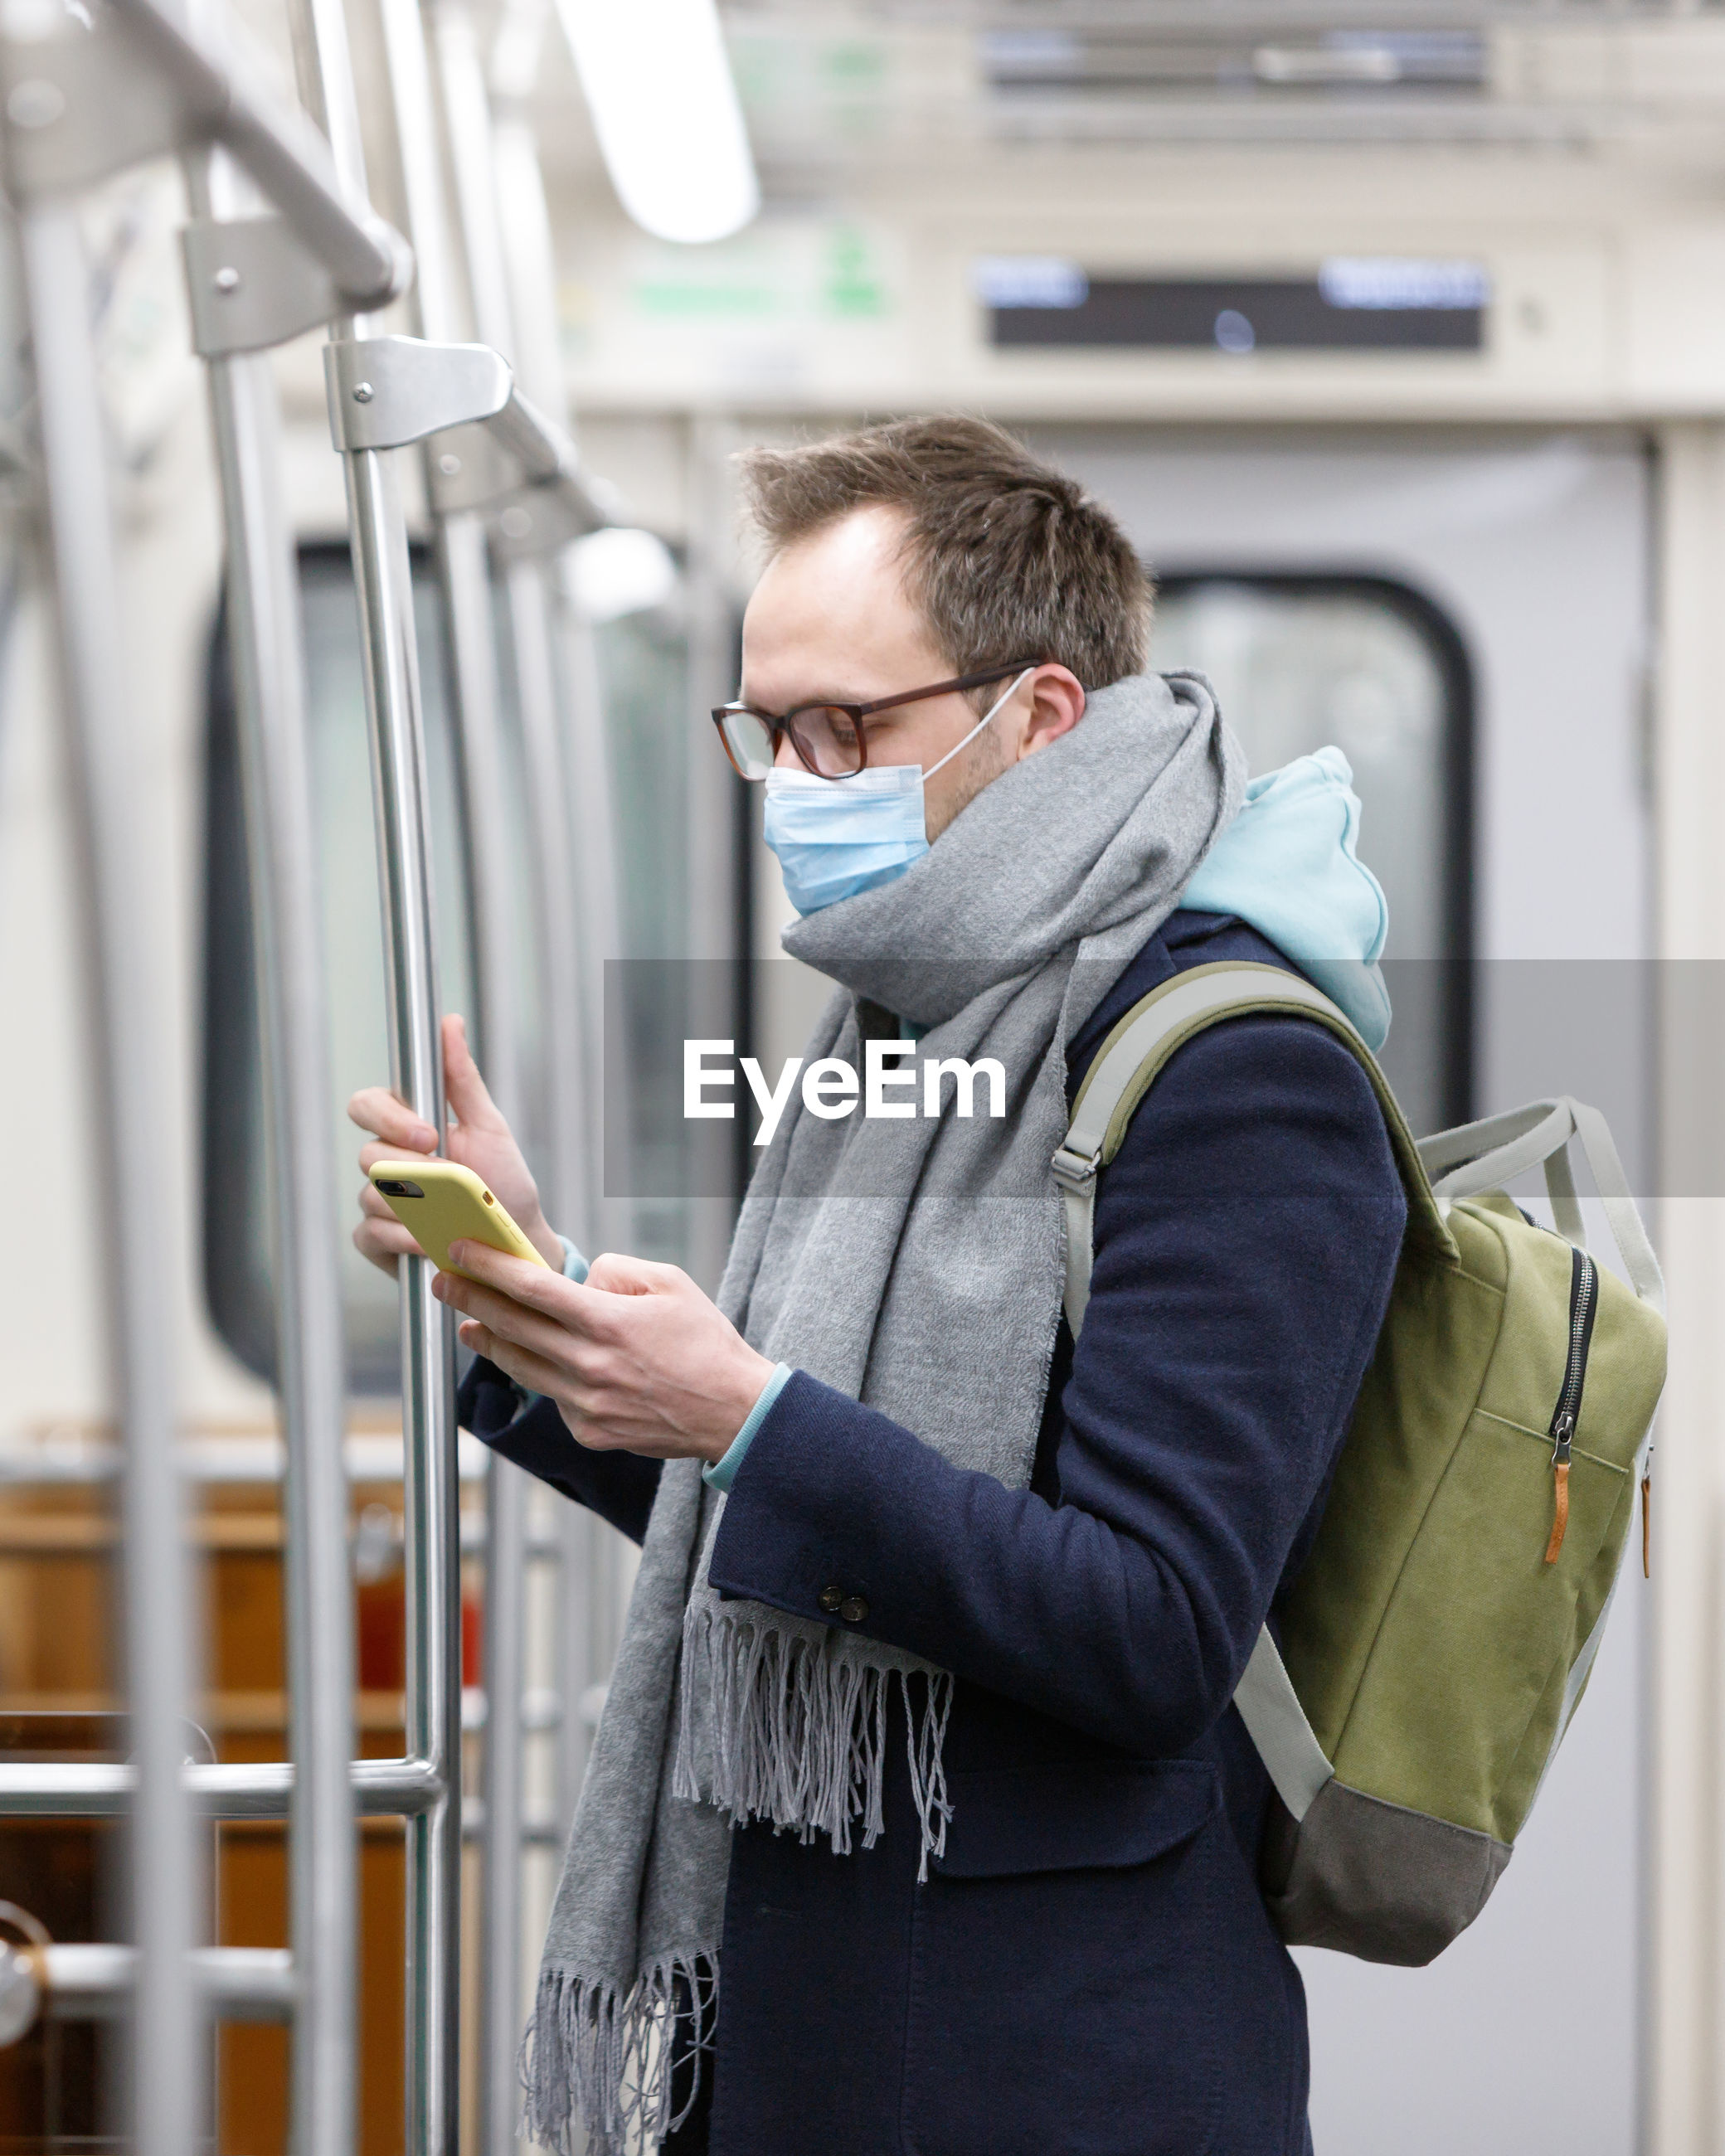 Side view of man wearing mask using smart phone while standing in subway train